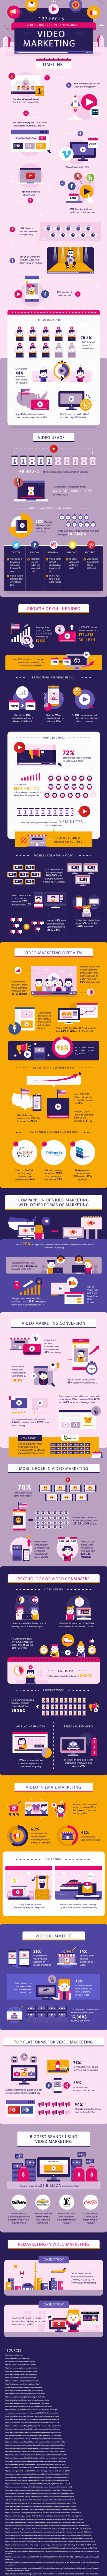 127 Video Marketing Facts Infographic